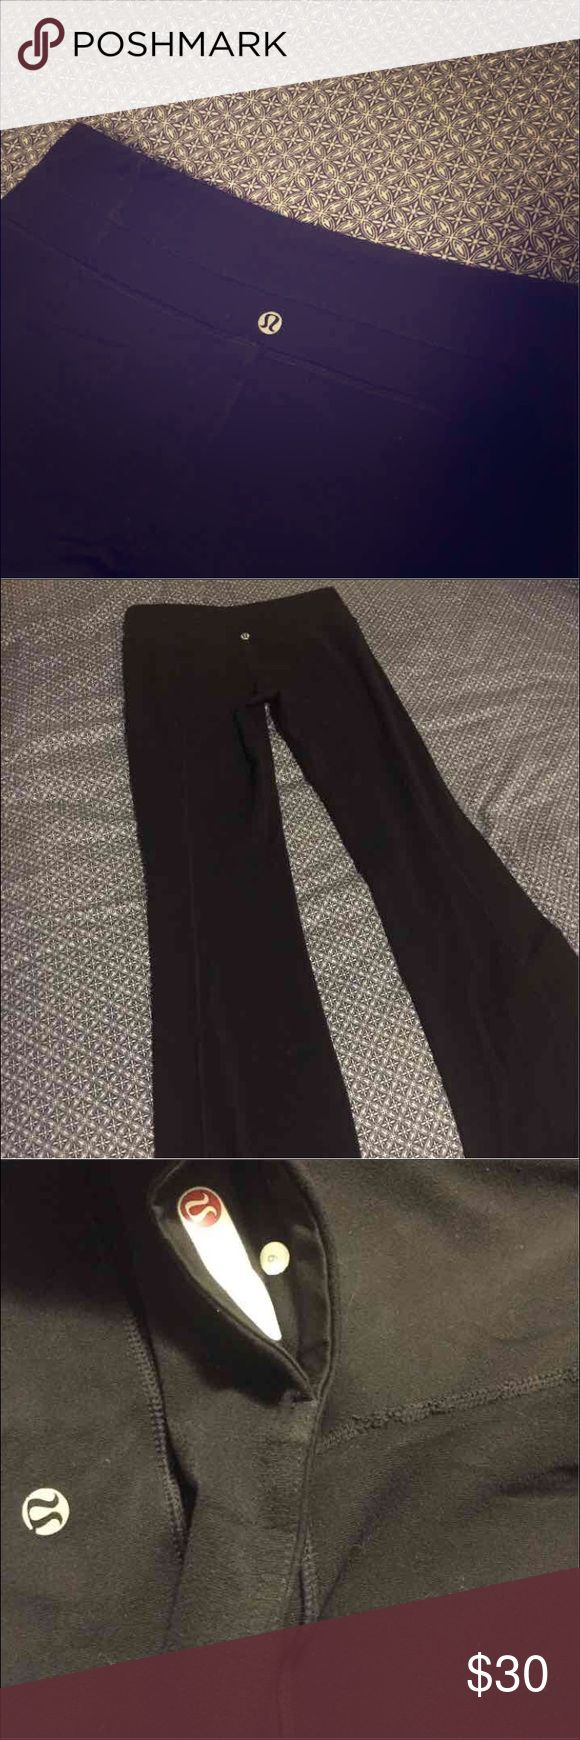 Lululemon reversible yoga pants Size 6, some of the stitching is pulled on the crotch, they can fix it at the lulu store. Priced accordingly. All black on both sides and the emblem is on the same place on both sides. lululemon athletica Pants Boot Cut & Flare